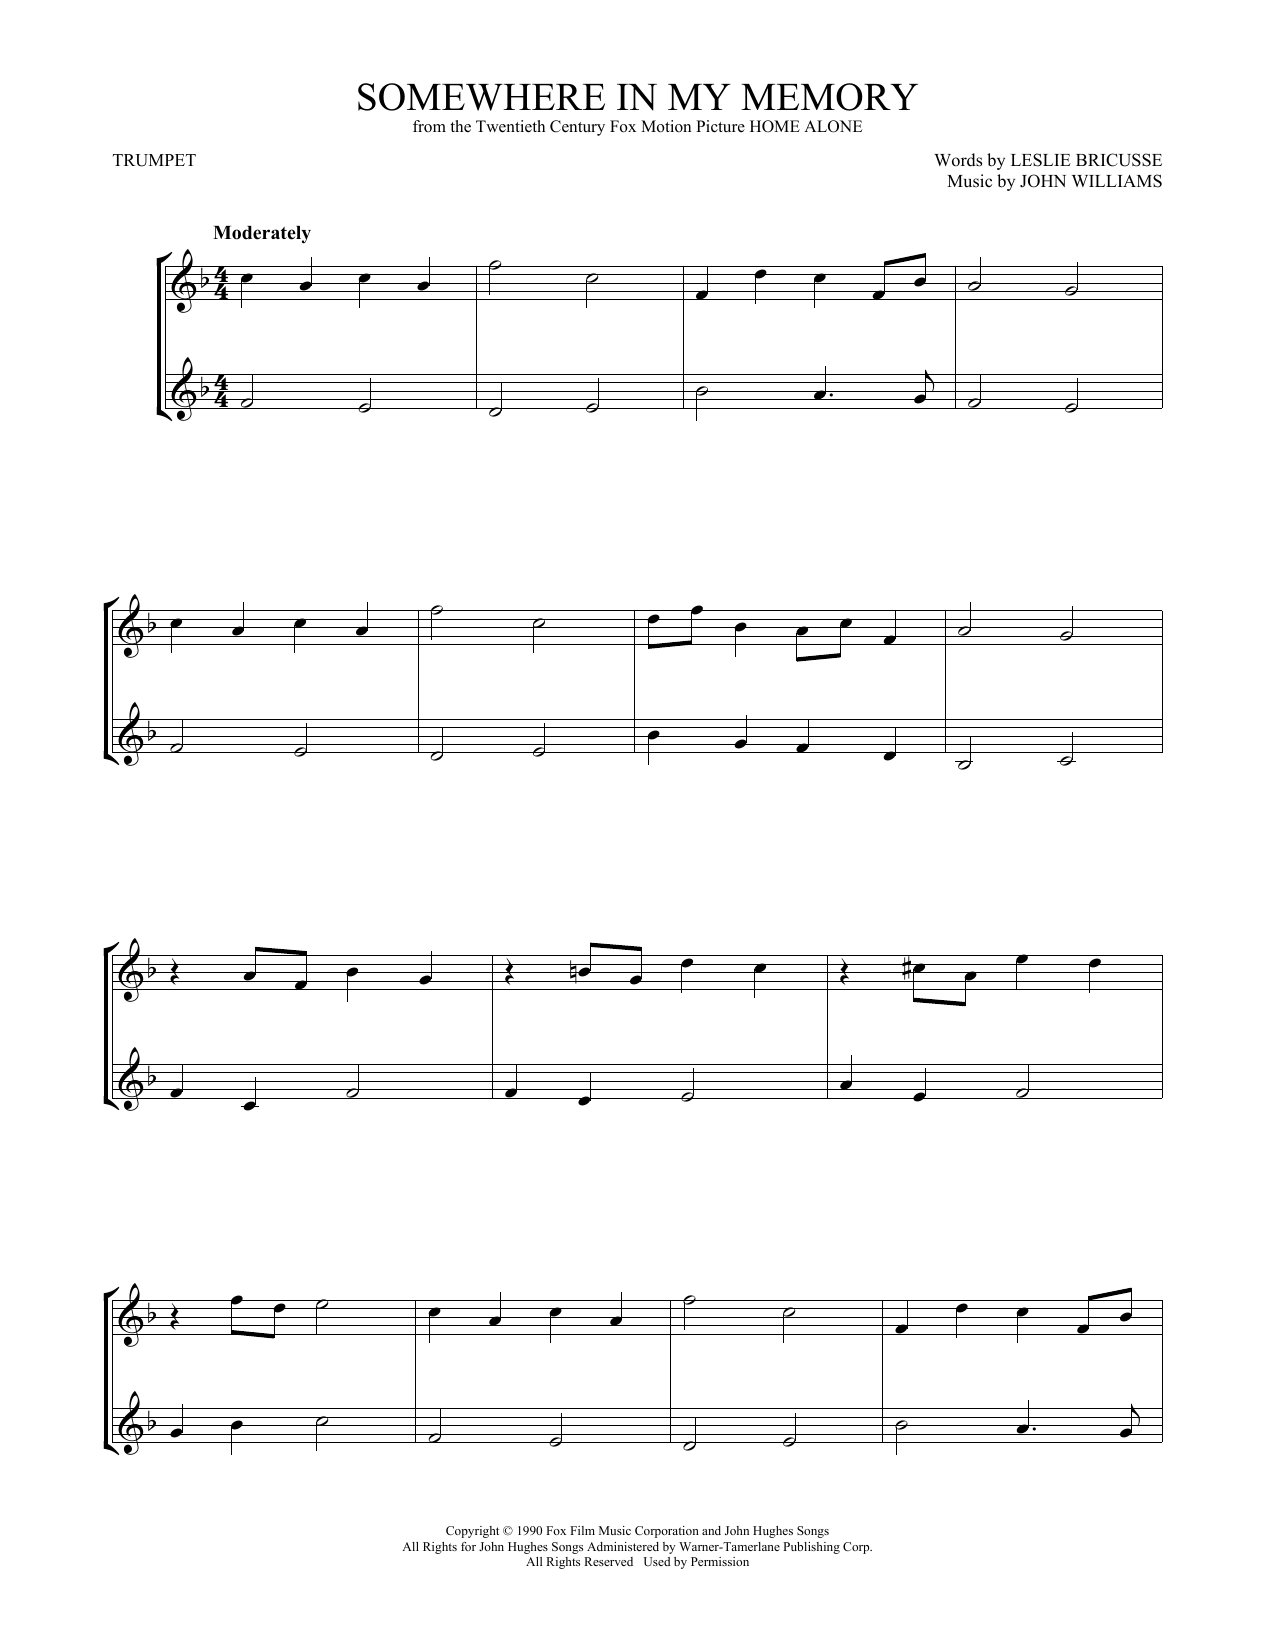 Somewhere In My Memory (Trumpet Duet) - Print Sheet Music Now